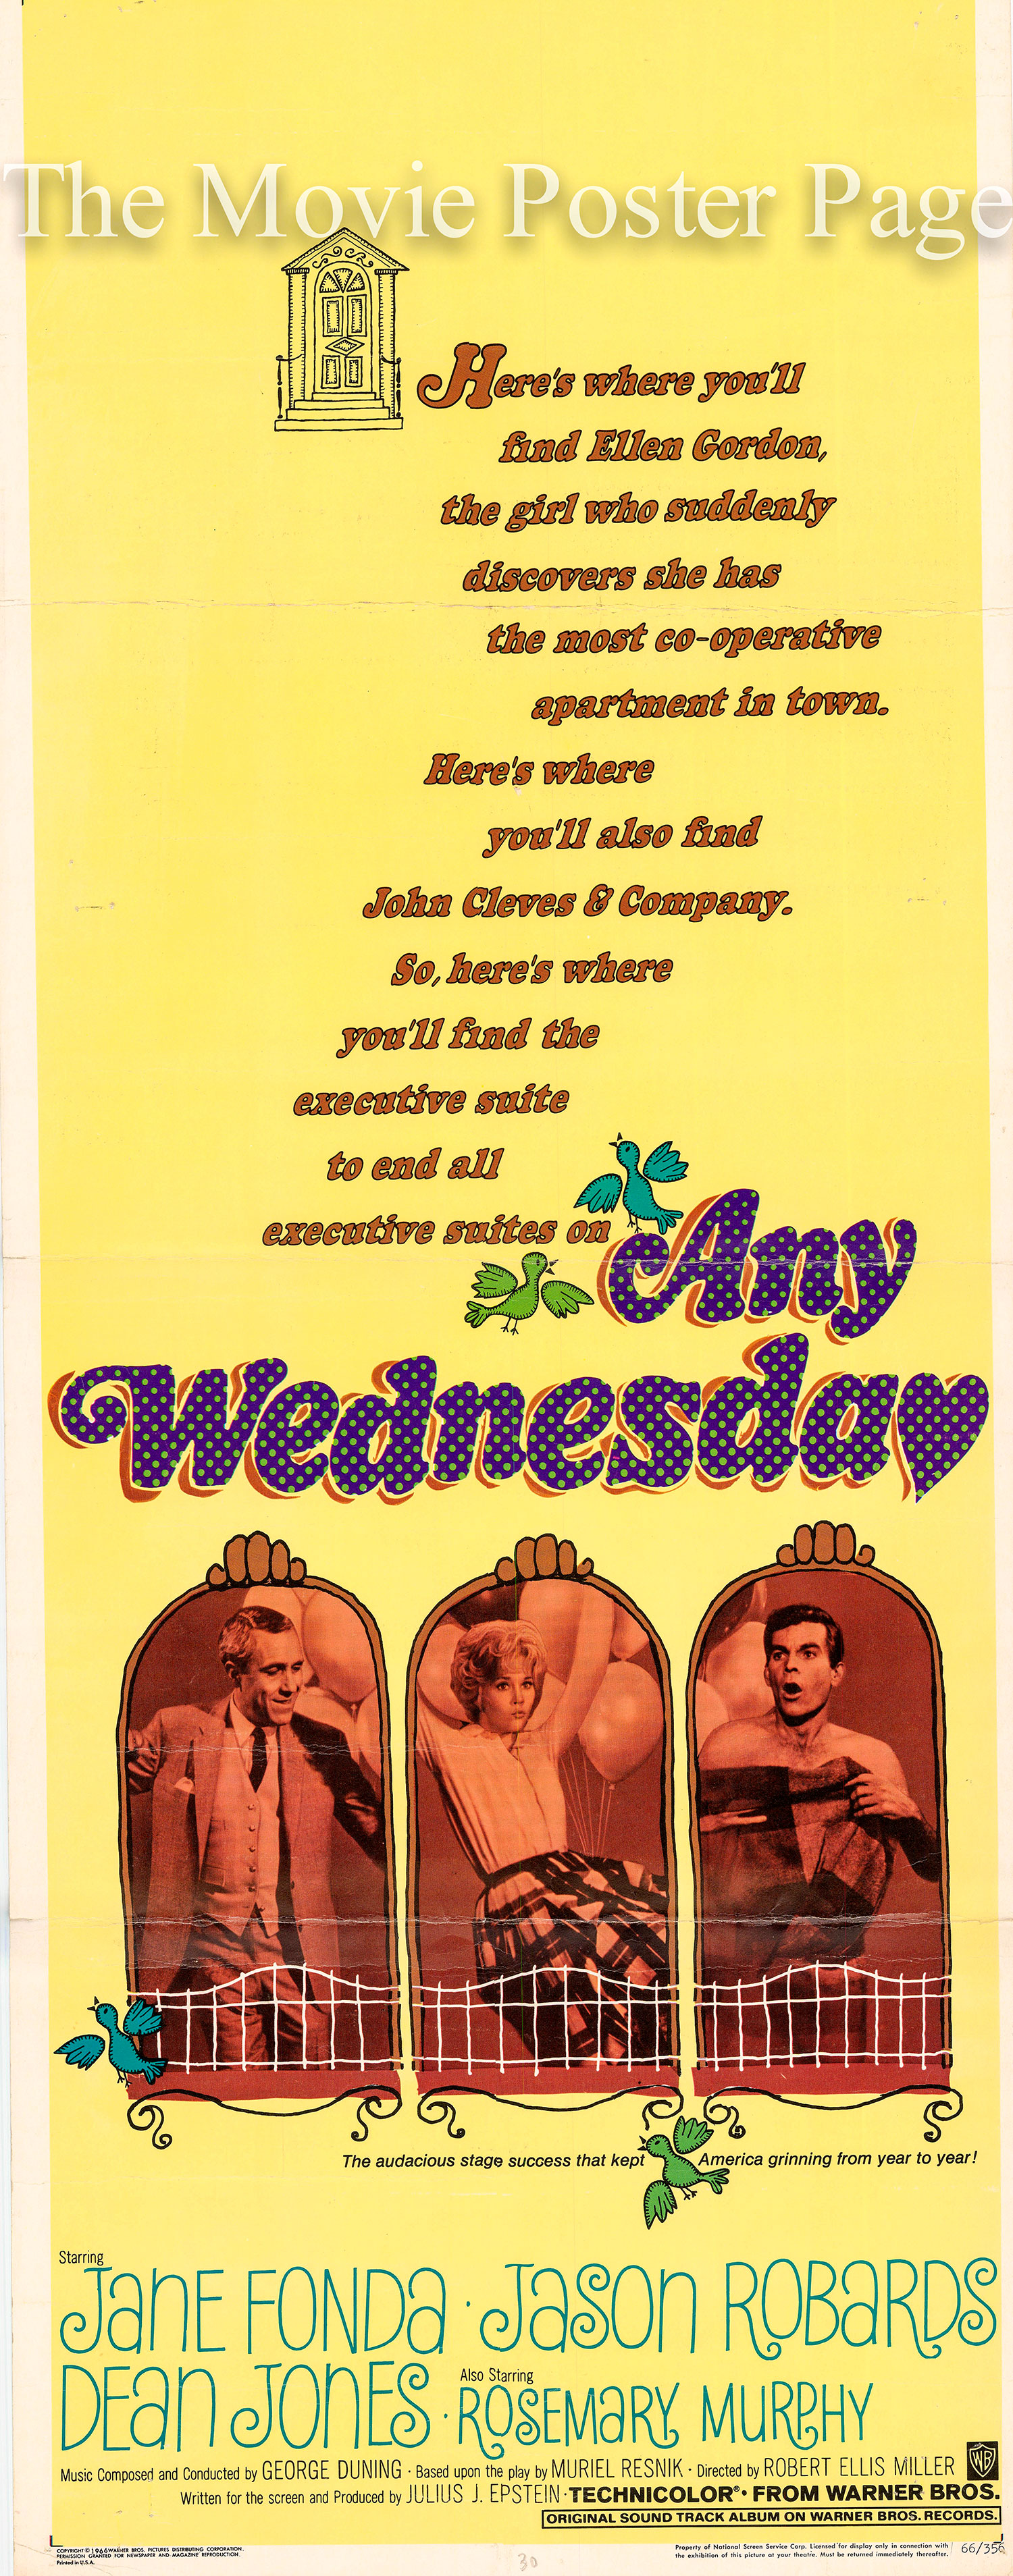 Pictured is a US insert poster for the 1966 Robert Ellis Miller film Any Wednesday starring Jane Fonda.